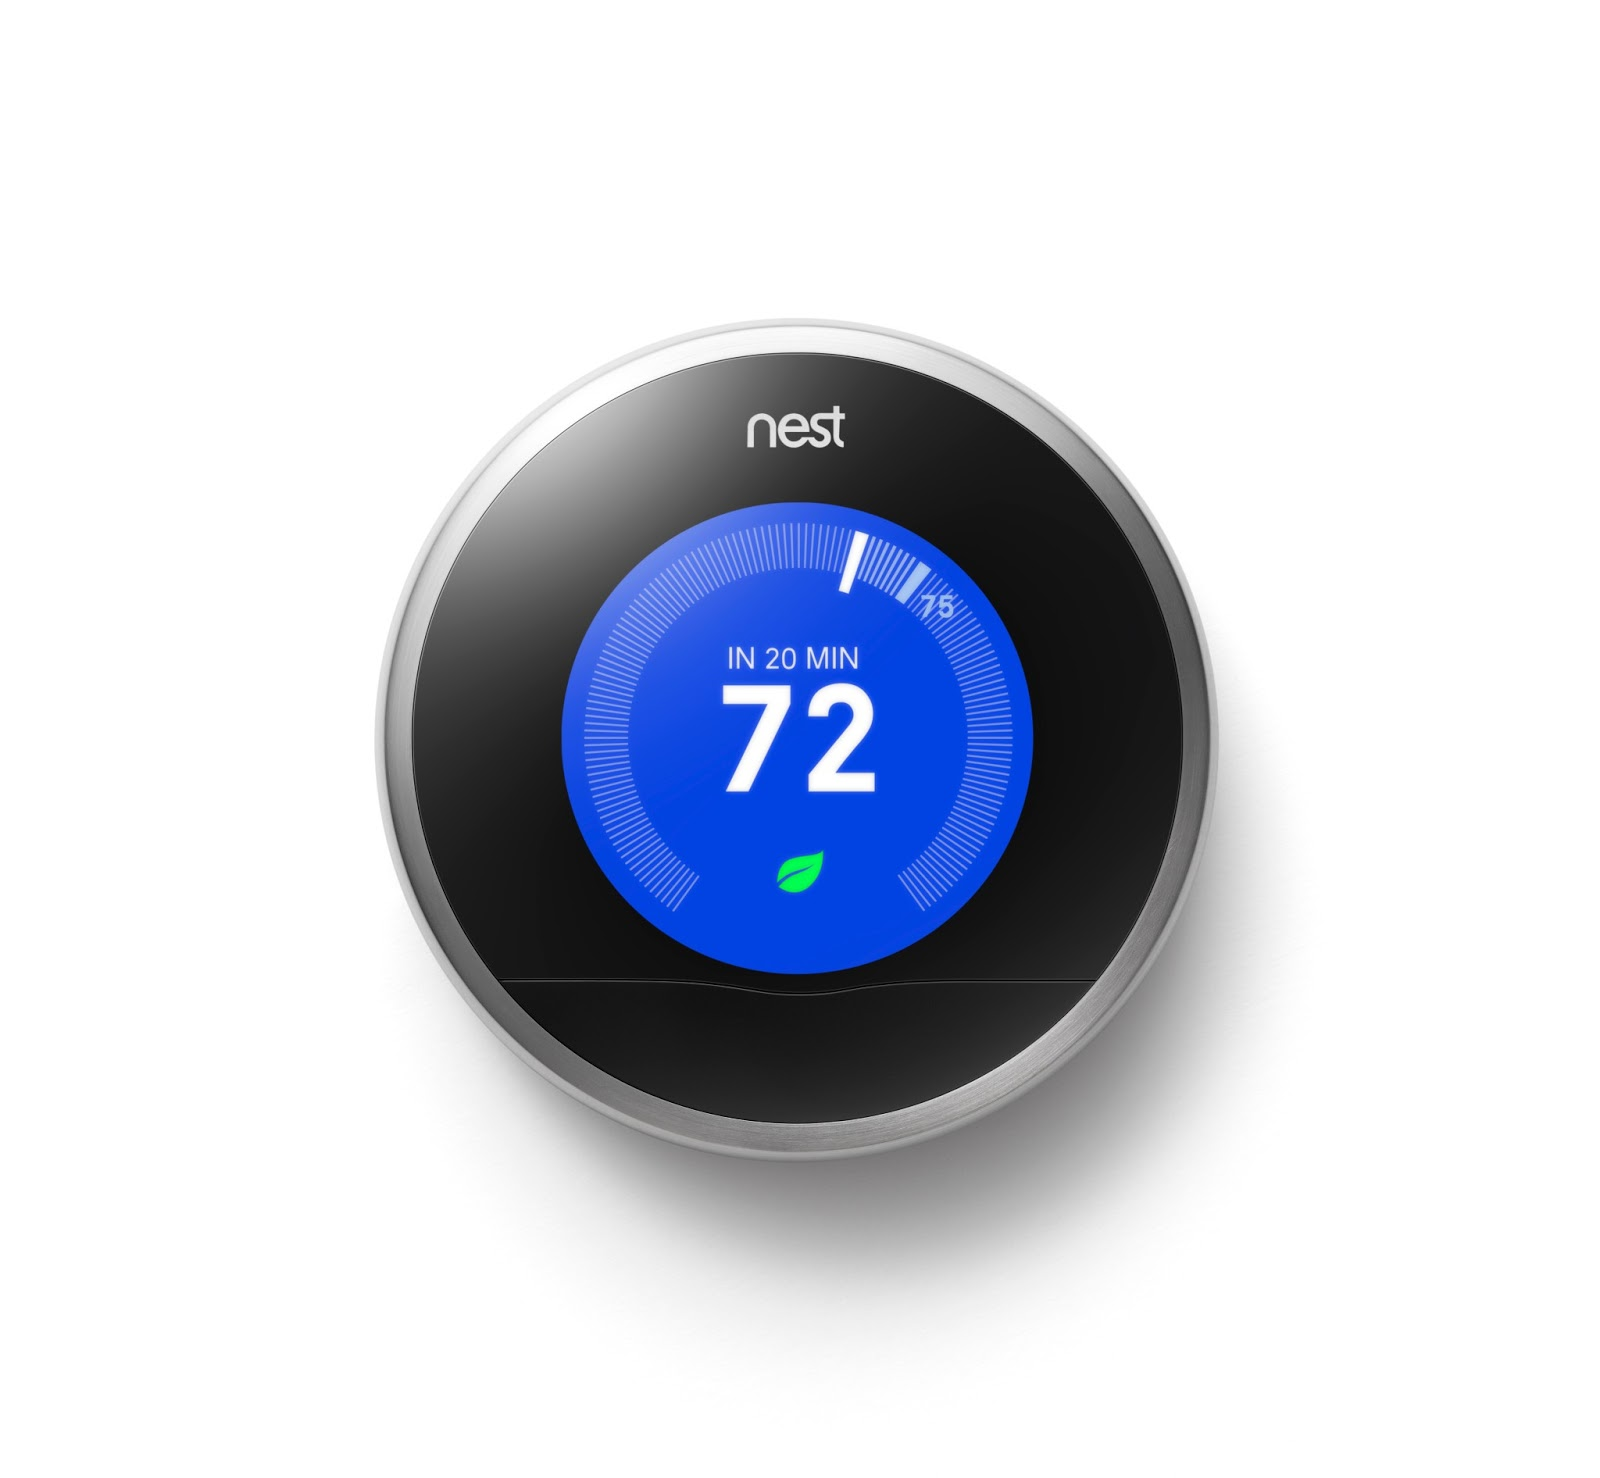 eco tech planet review nest learning thermostat 2nd generation. Black Bedroom Furniture Sets. Home Design Ideas